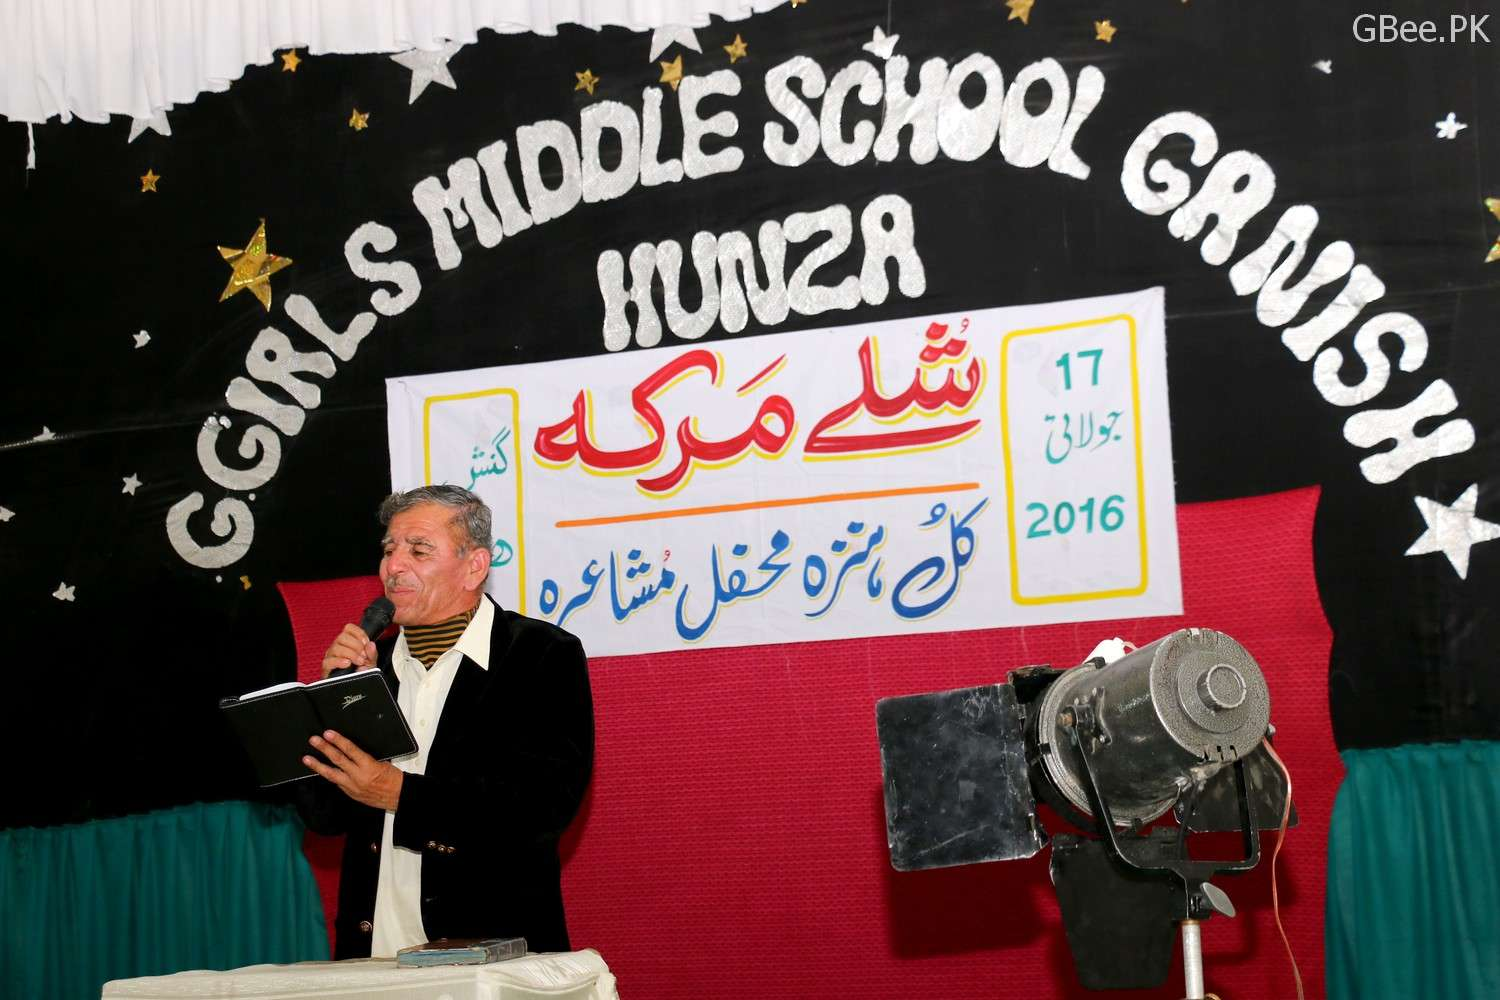 Ustaad Sherbaz Khan Hunzai at Shulay Maraka Mehfil-e-Mushaira in Ganish Hunza